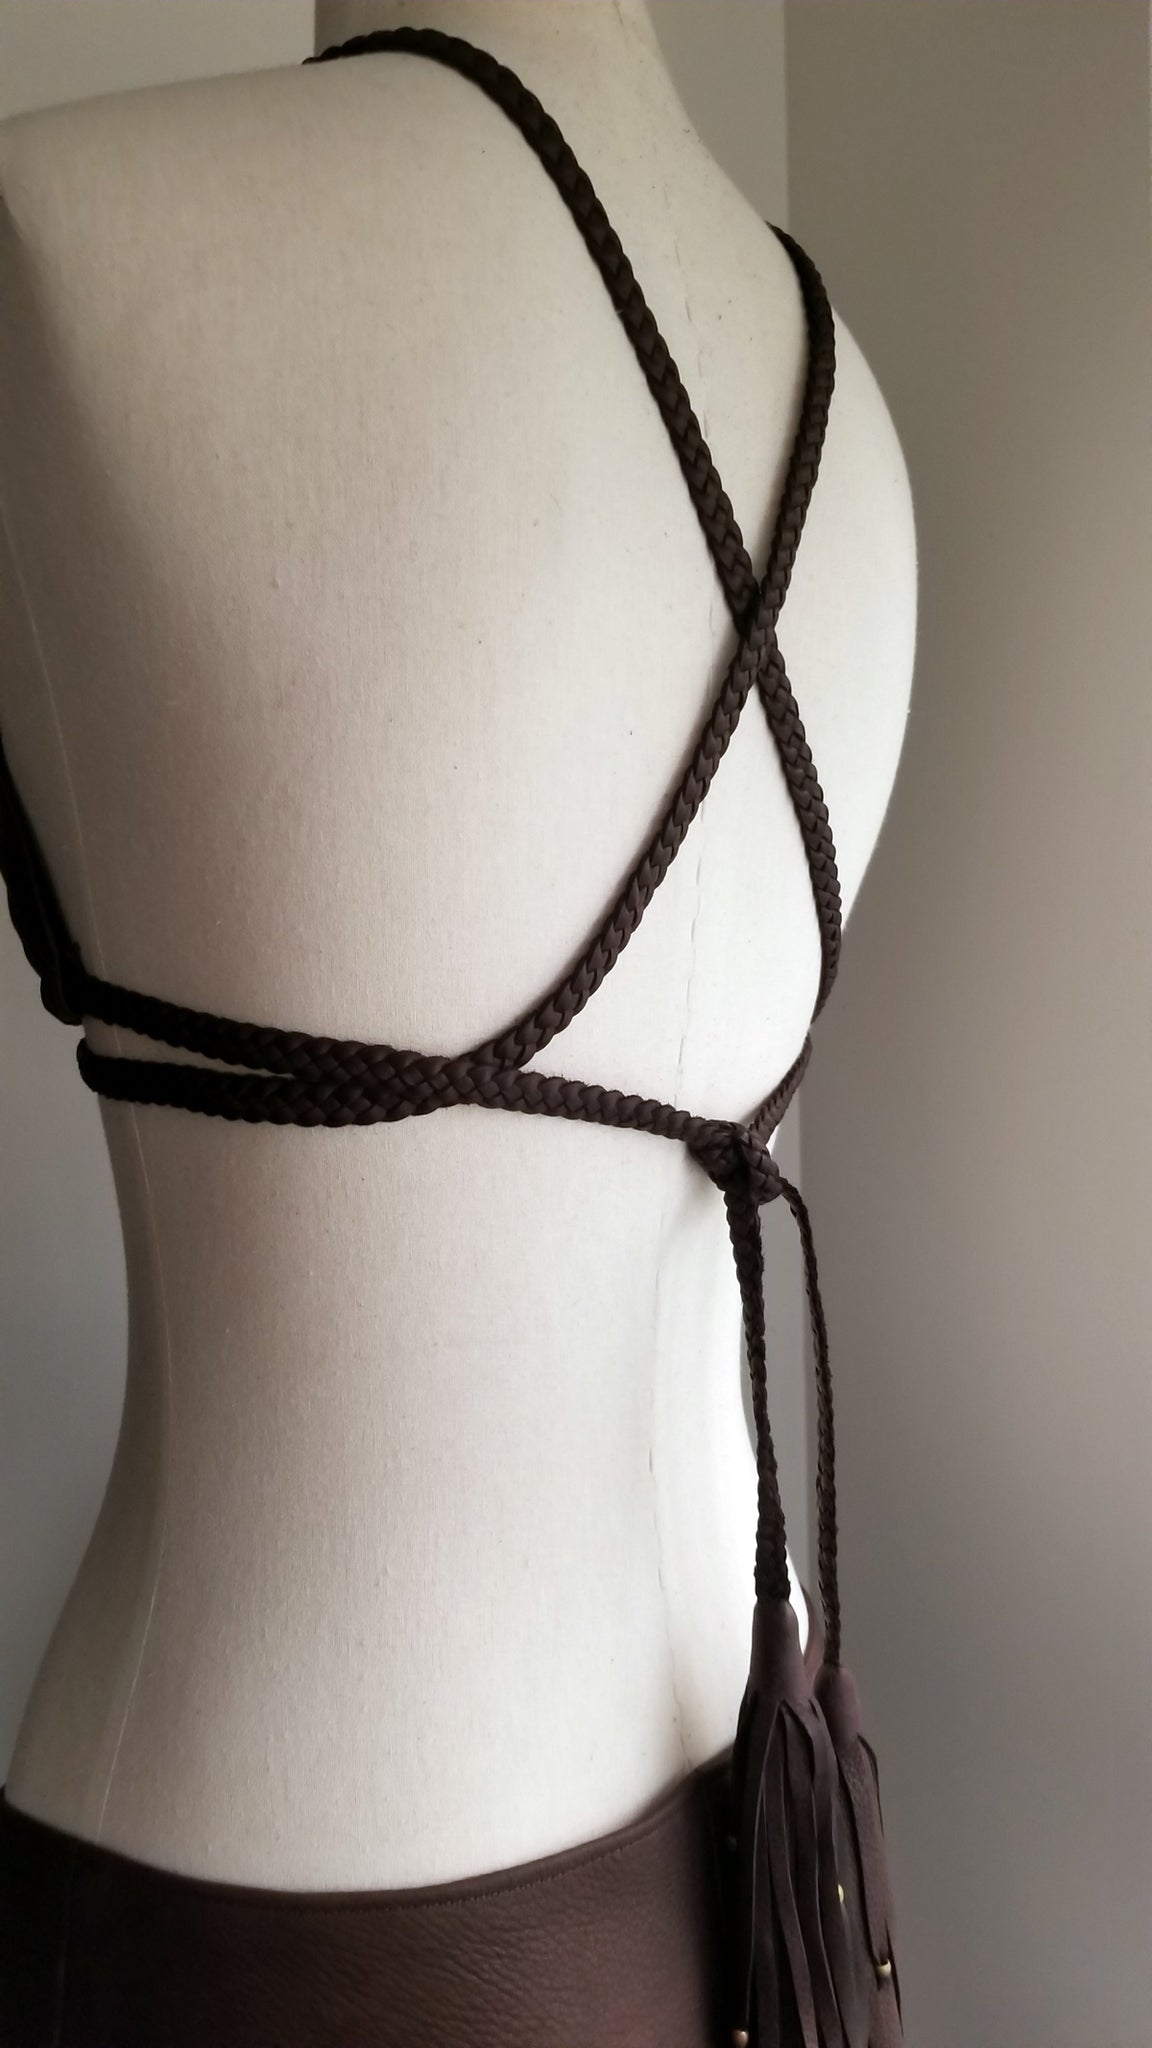 Darice deerskin leather bikini top on mannequin, chocolate brown leather